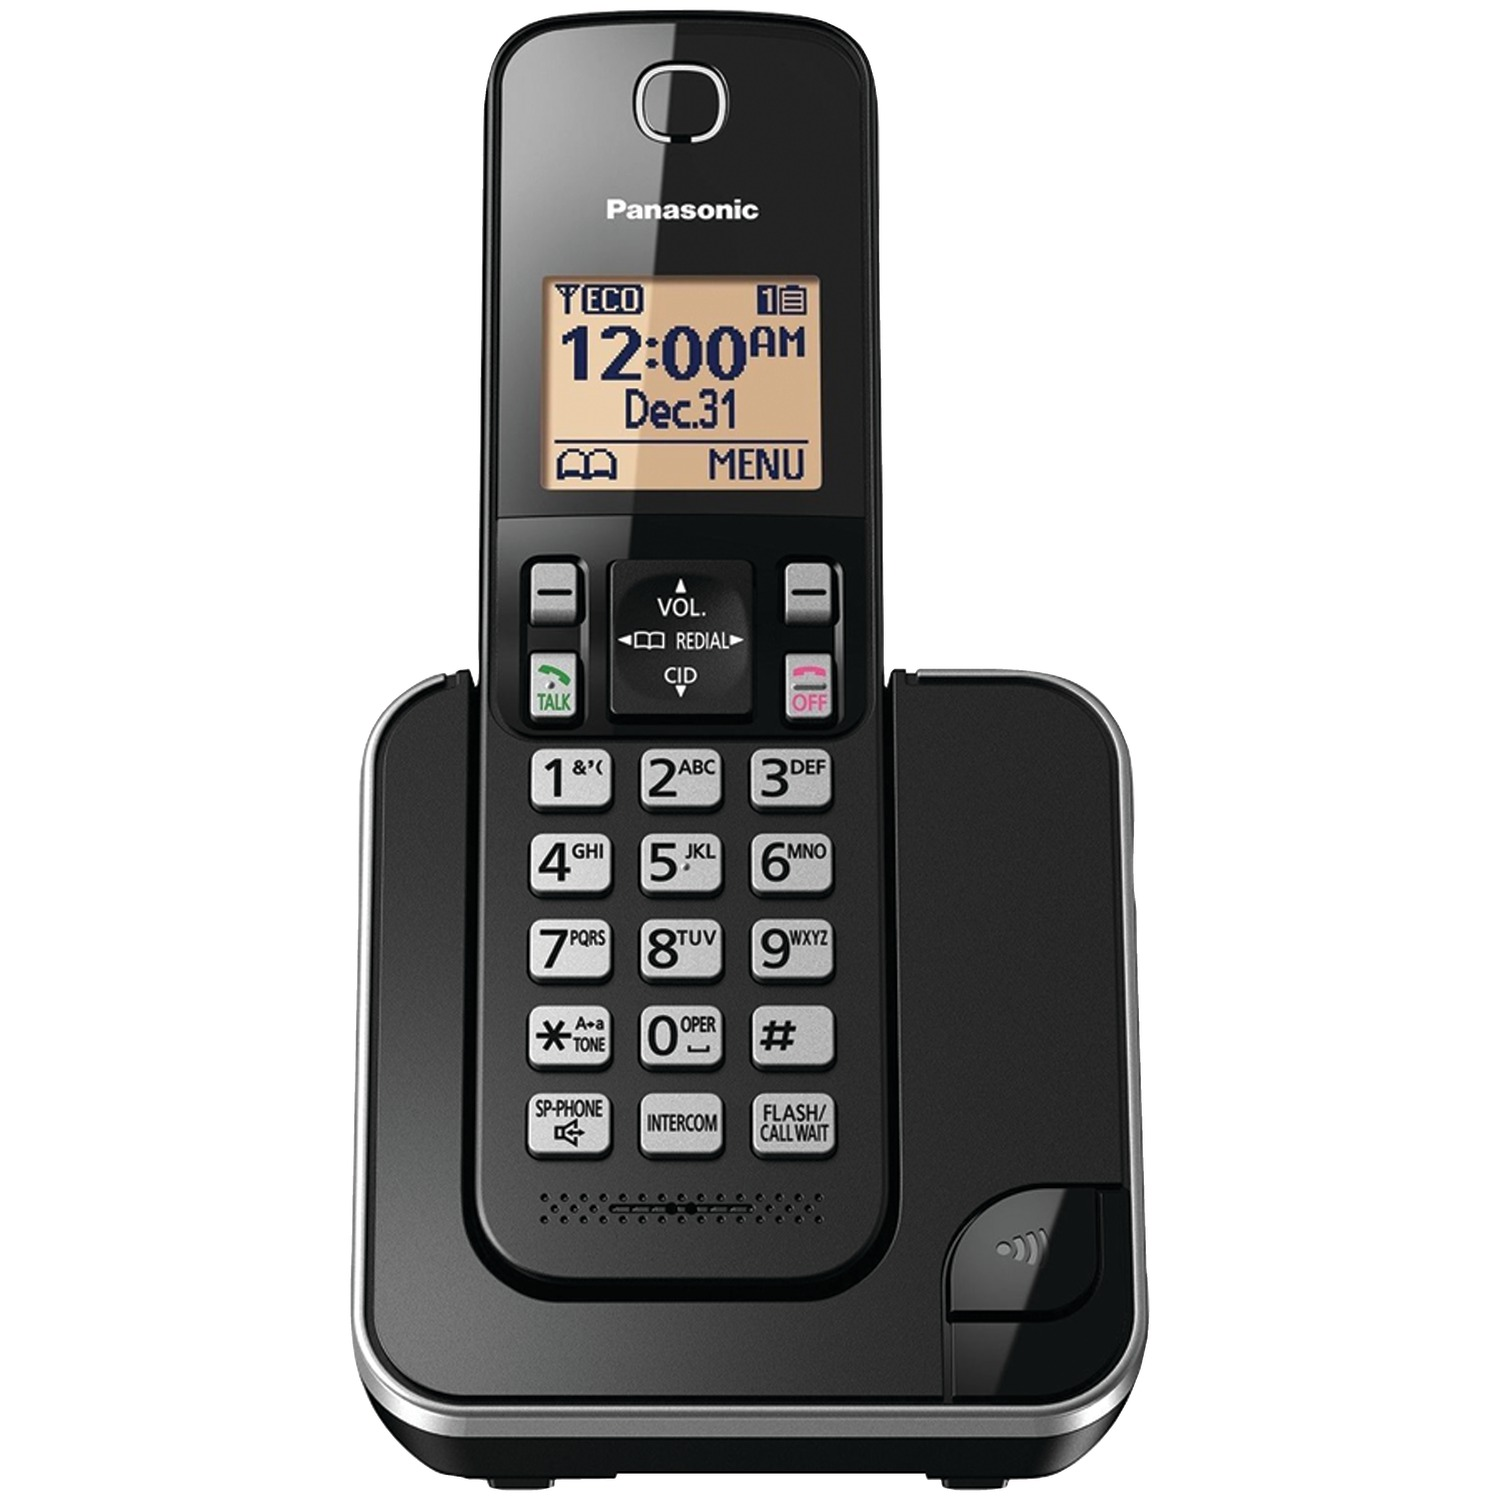 Panasonic Kx Tgc350 Cordless Phone With Caller Id Call Waiting Circuit Image For From